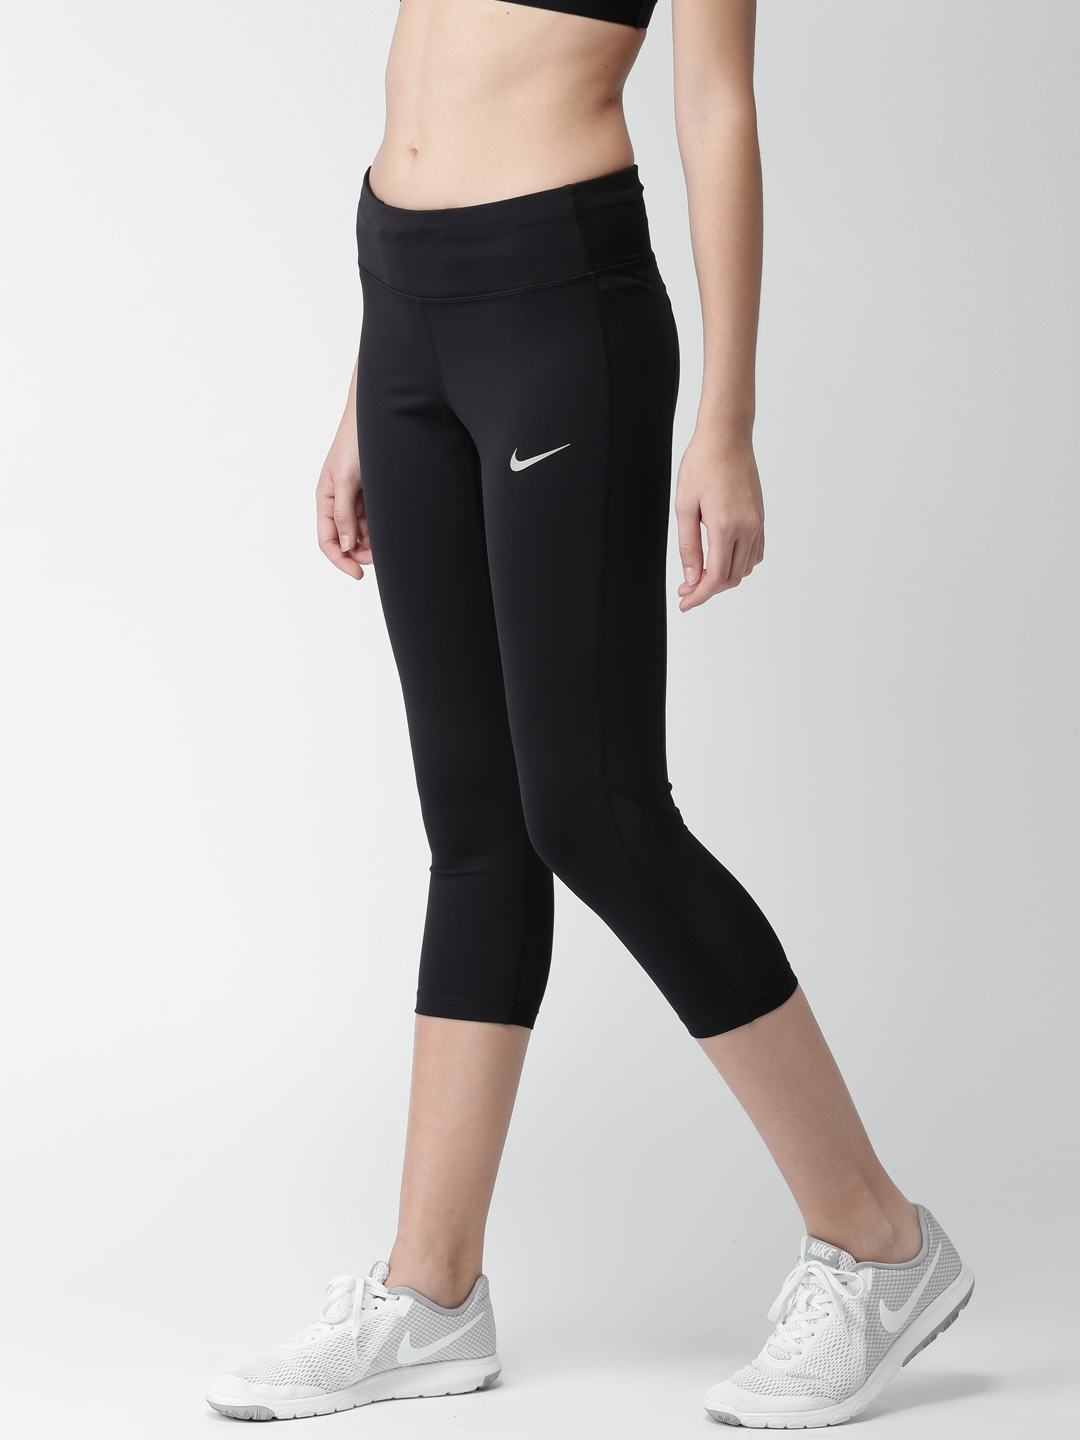 bd35d85ed08f7 Nike Women Solid Black Racer Crop Running Capri With DRI-FIT Technology